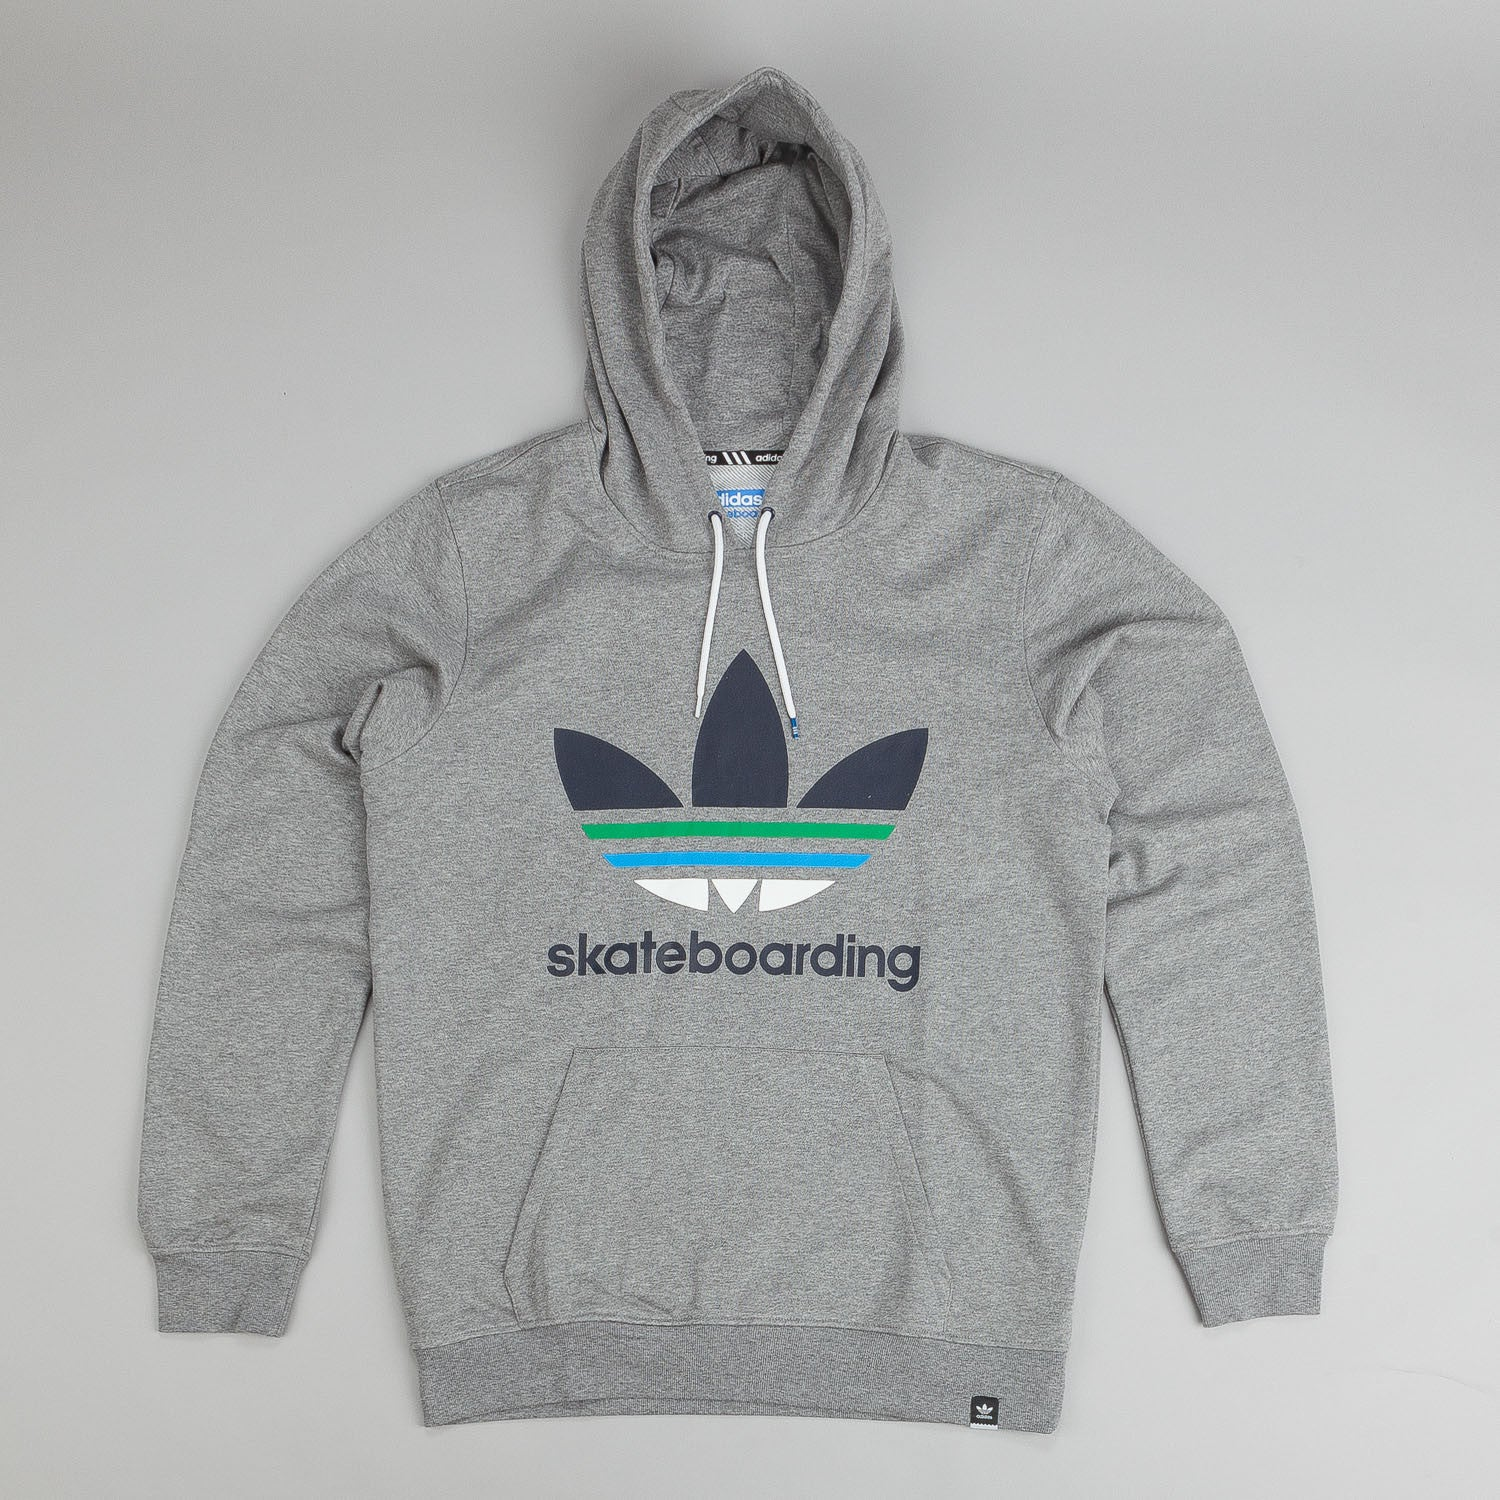 Adidas Adv 2.0 Hooded Sweatshirt